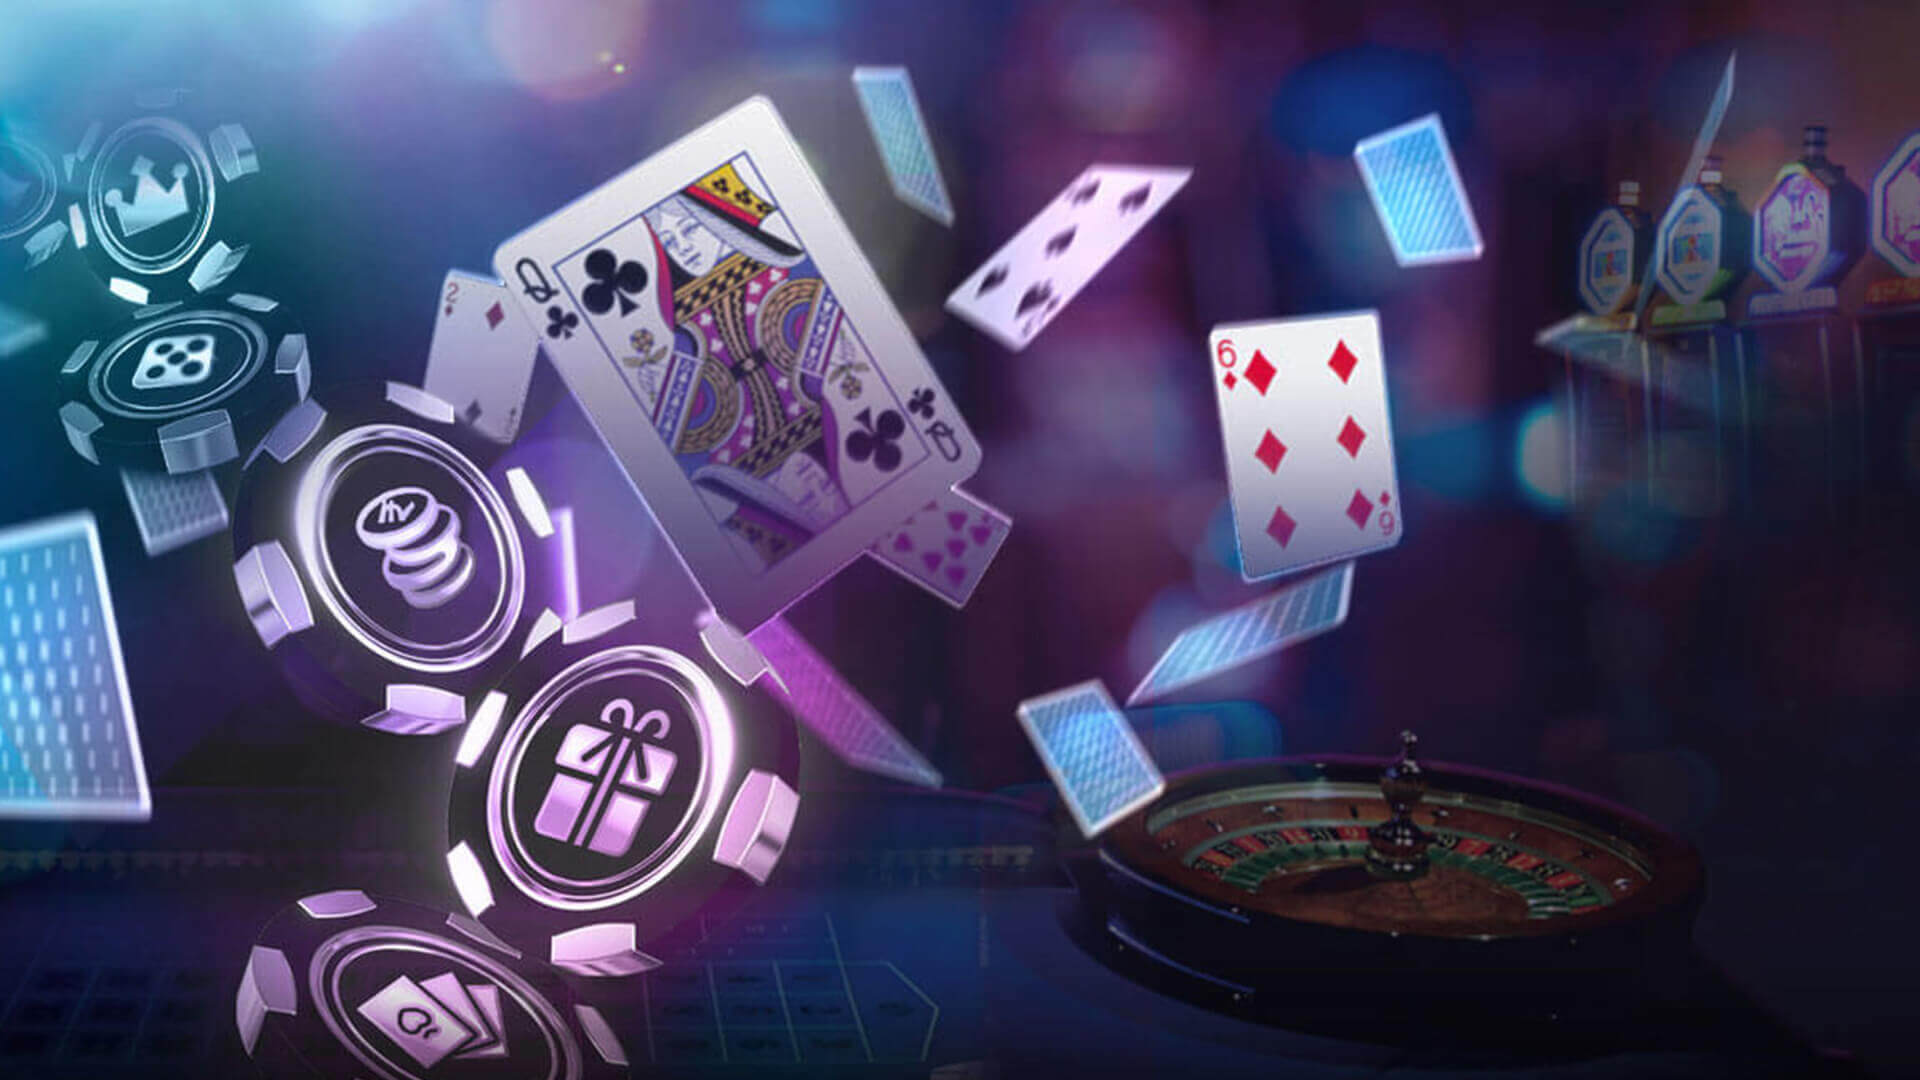 Poker Online - Top 10 Online Poker Sites, Reviews, News, And Exemptions